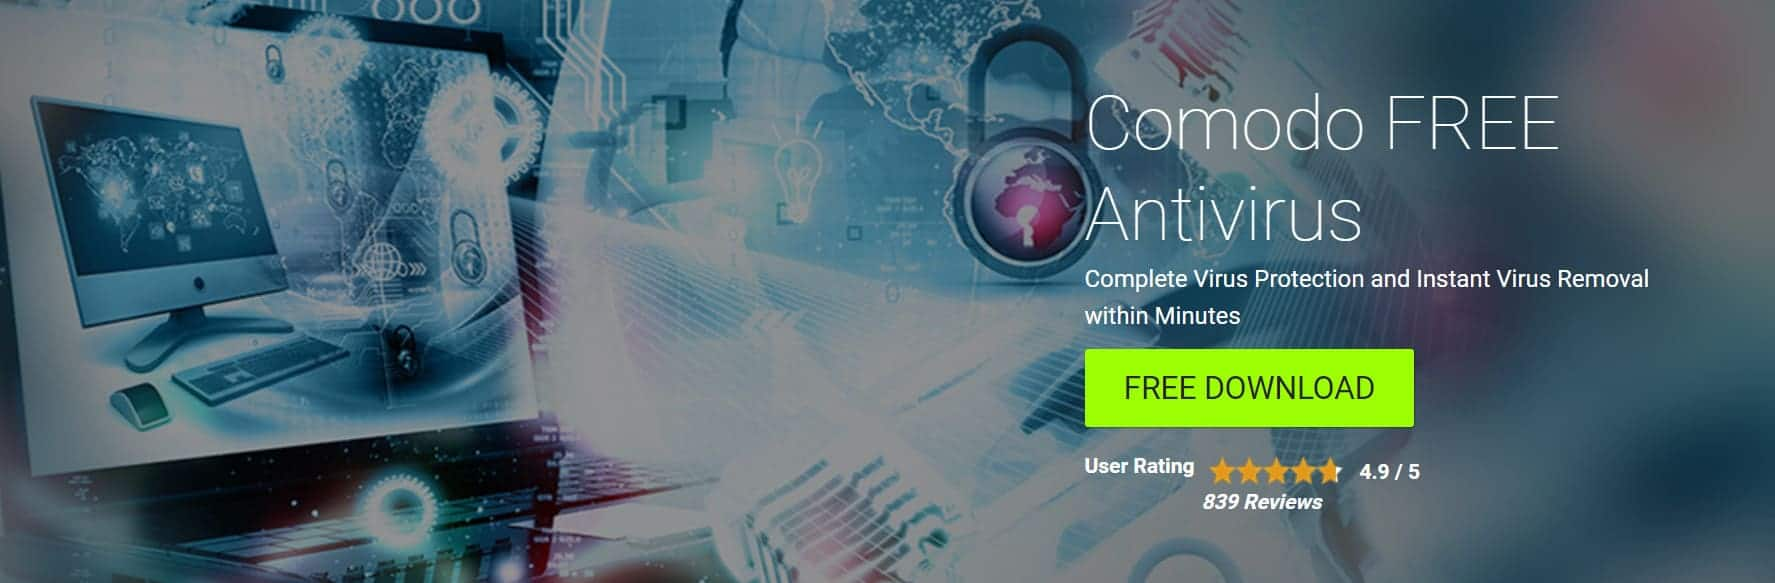 Best Free Antivirus Programs For Windows And Mac Comparitech